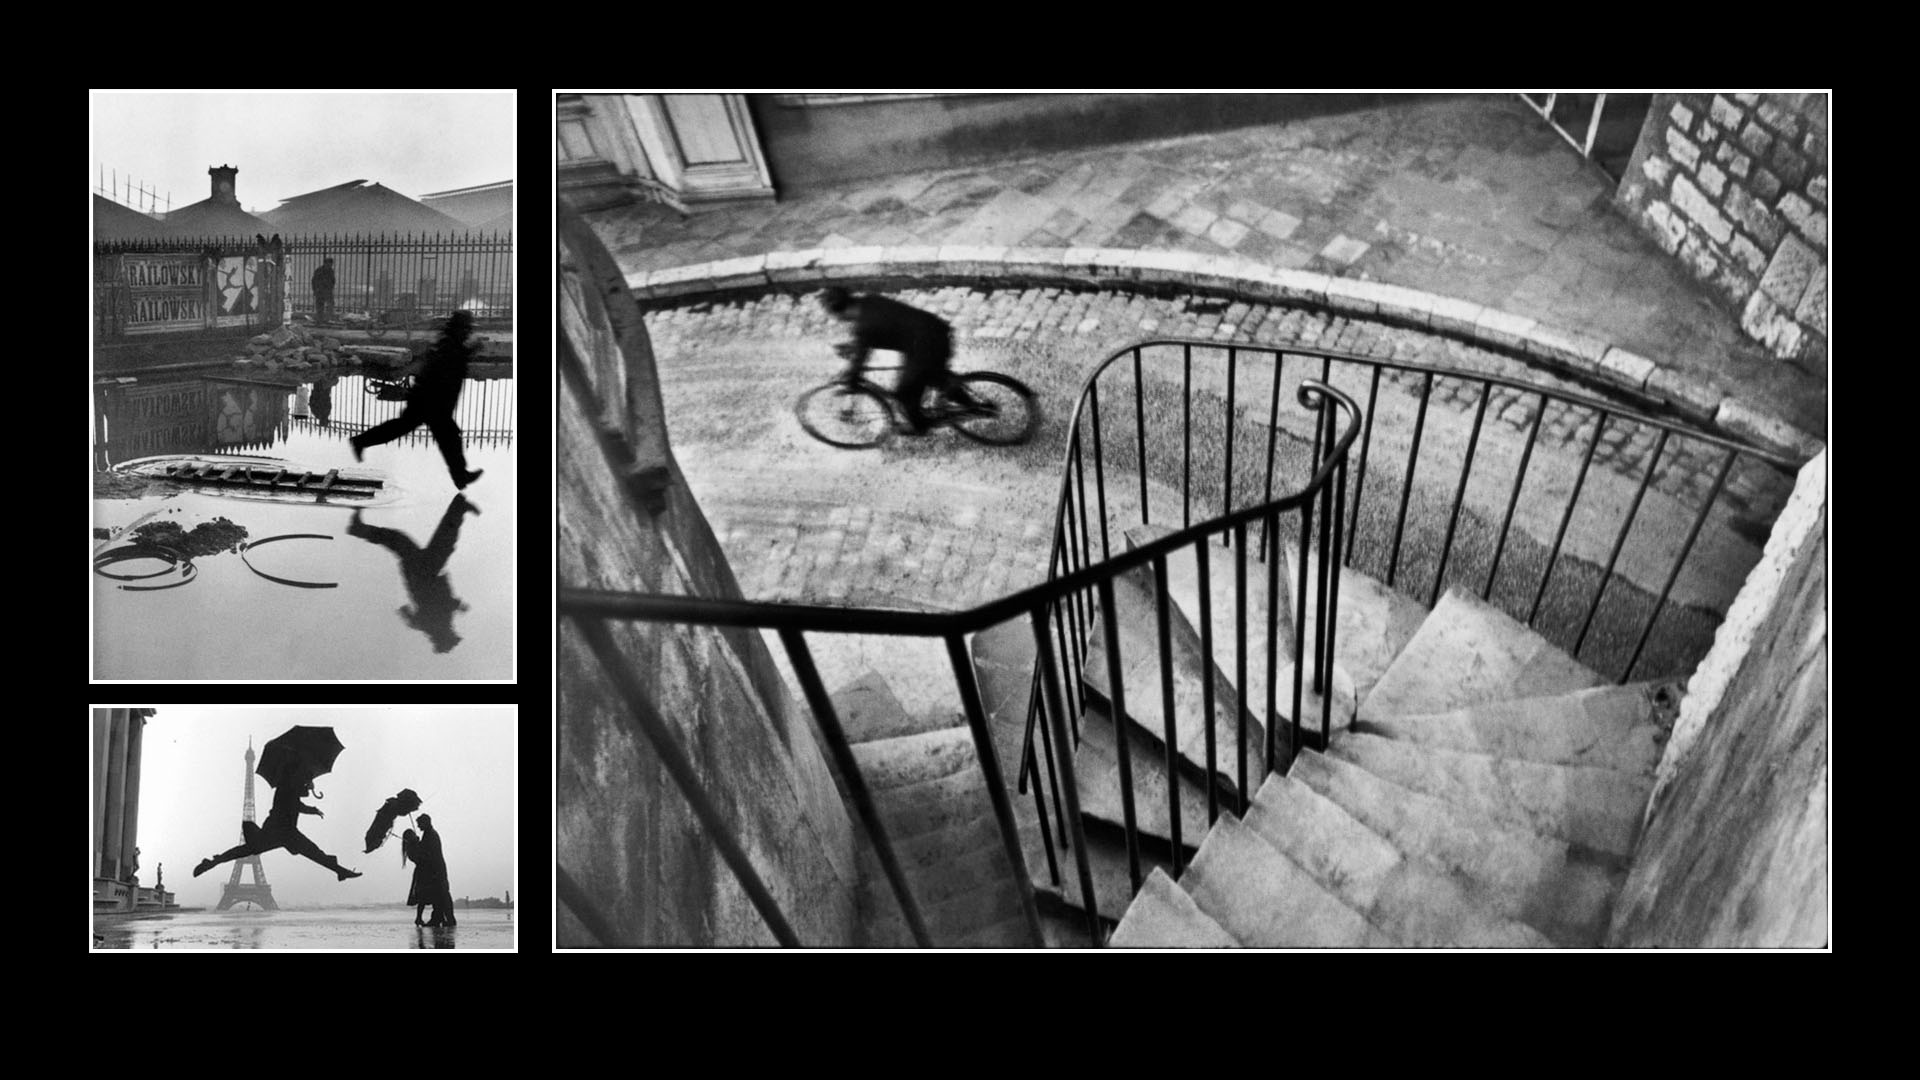 Decisive Moments by Henri Cartier-Bresson